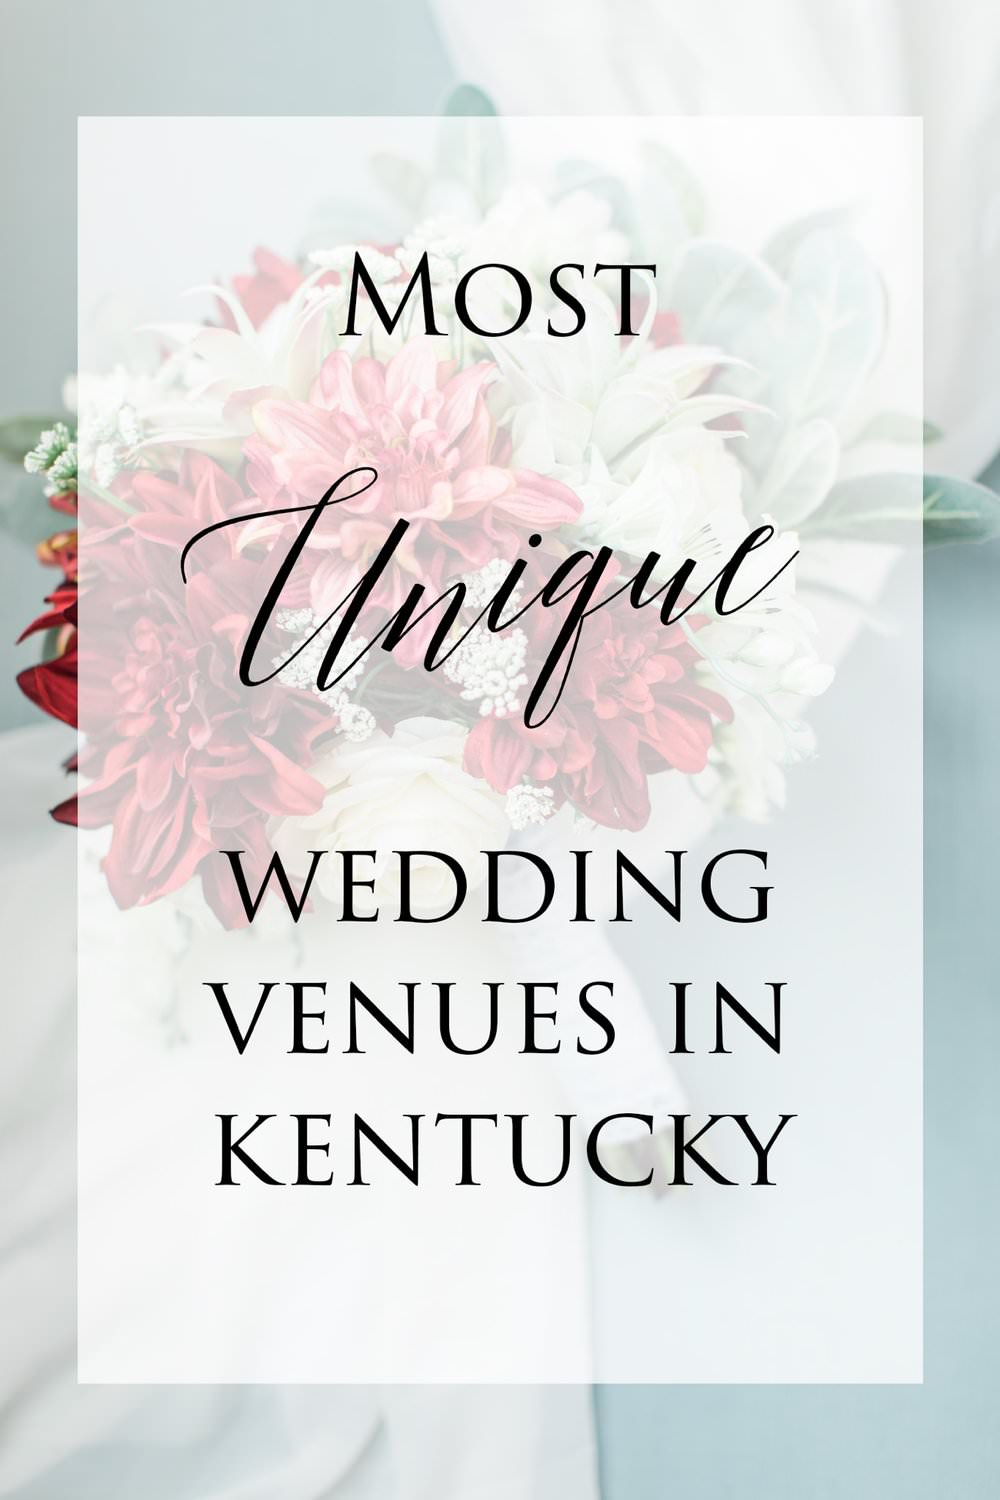 Unique Wedding Venues in Kentucky - If you and your soon-to-be spouse are seeking a ceremony and reception space that is a little more out of the box and farther away from the norm, we've got you covered. Take a look at some of the top unique wedding venues in Kentucky...read more